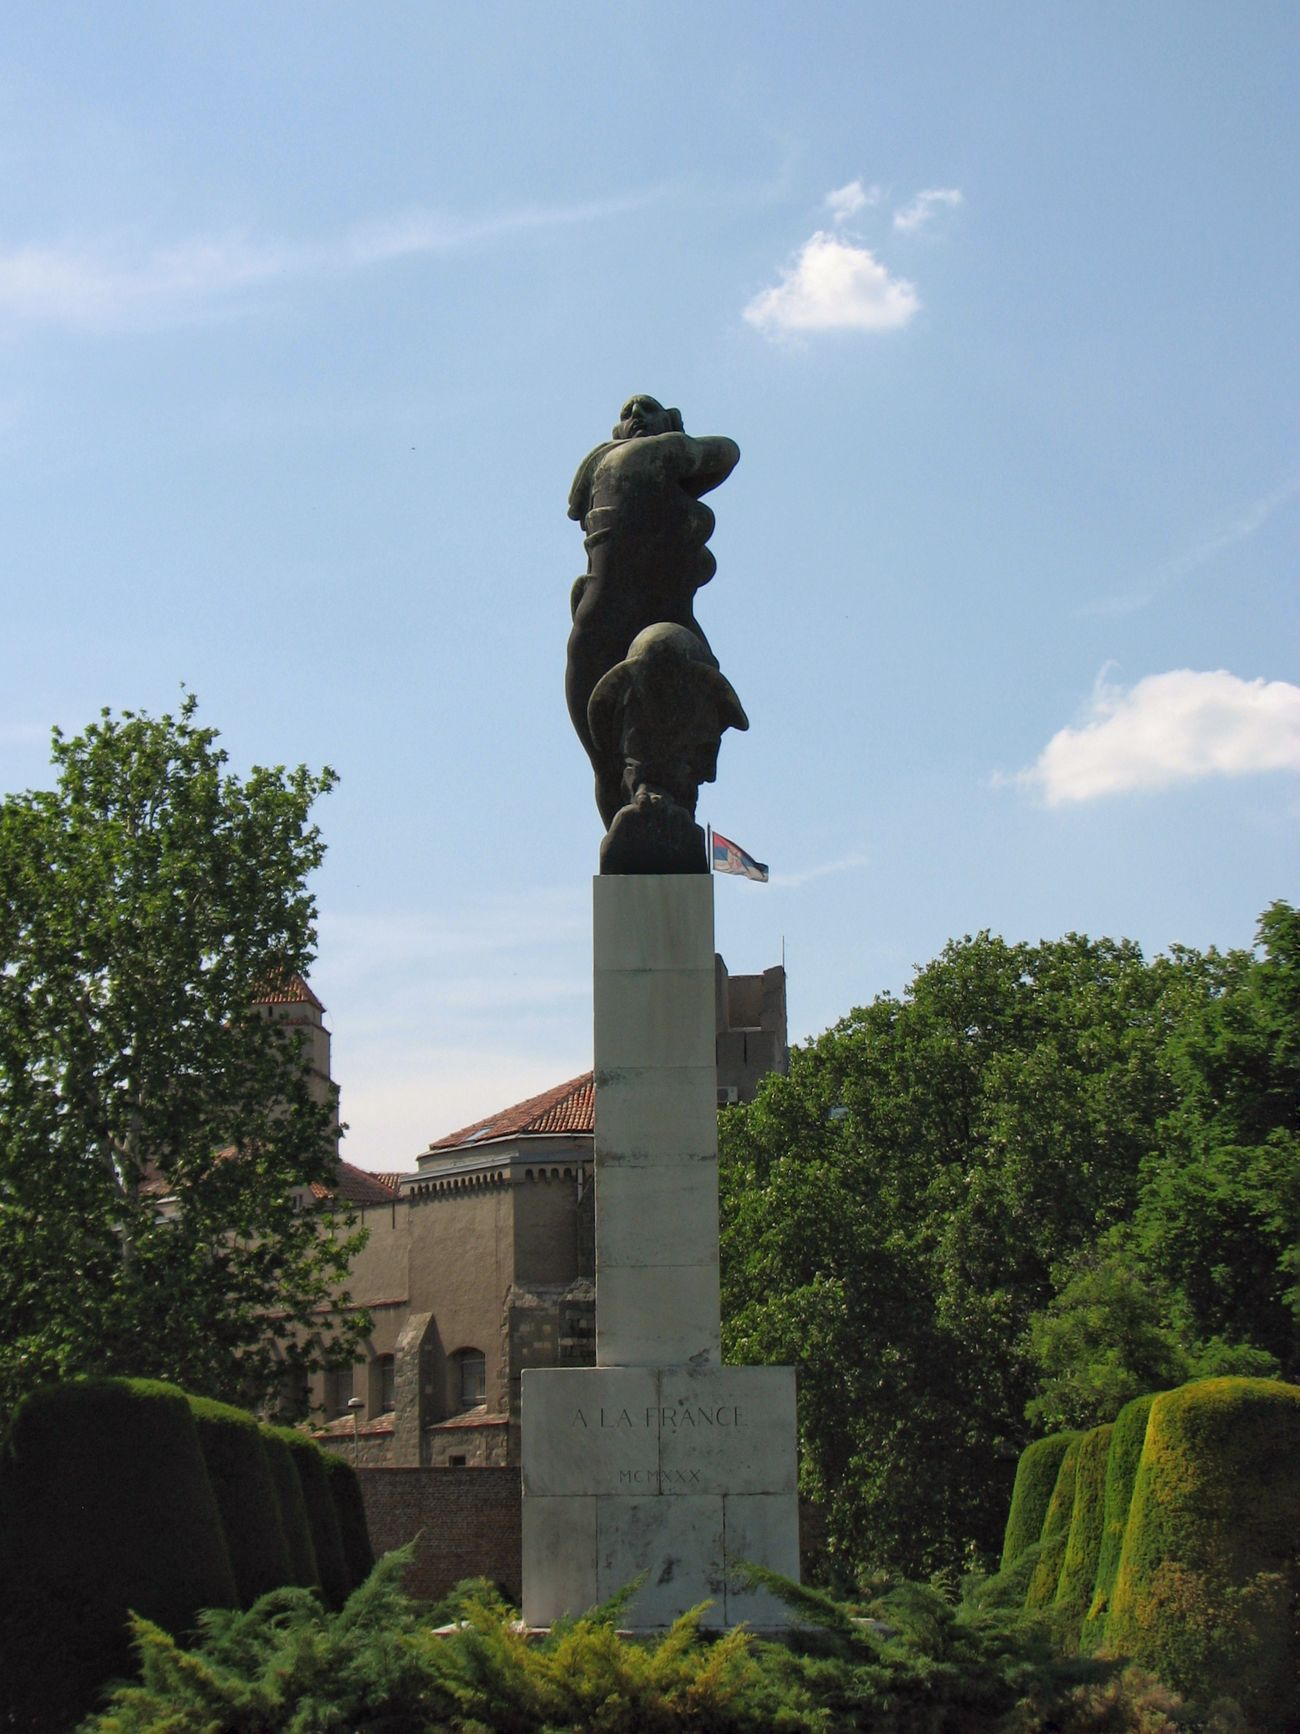 Monument No People Statue Sky City Sculpture Reconnaissance A La France World War I Memory Memorial Serbia Yugoslavia Kalemegdan  Belgrade